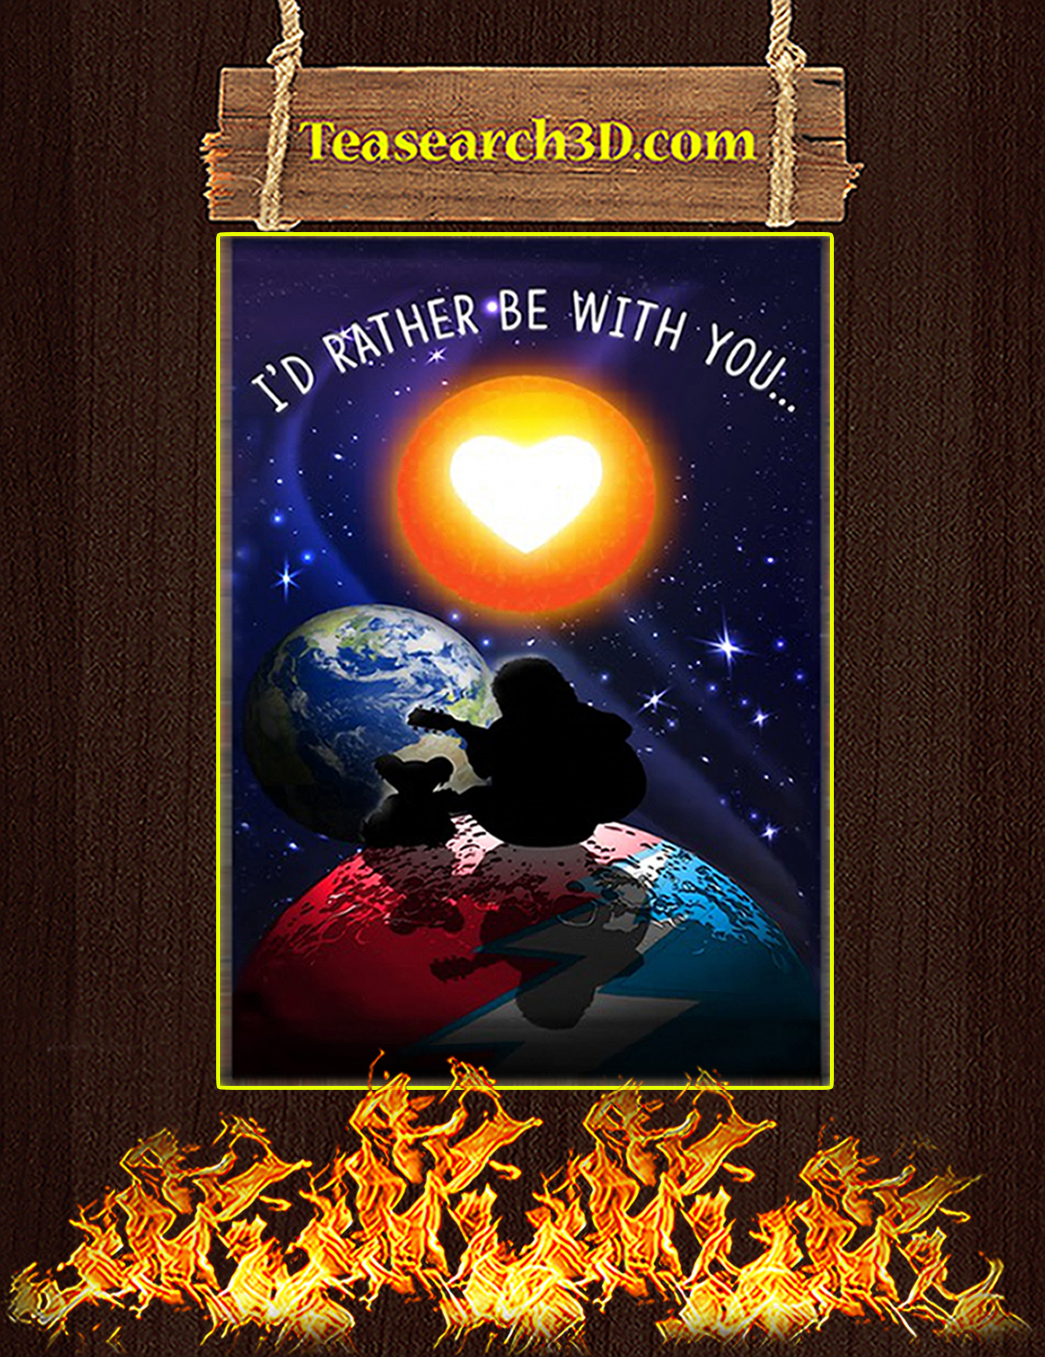 I'd rather be with you steven universe poster A1